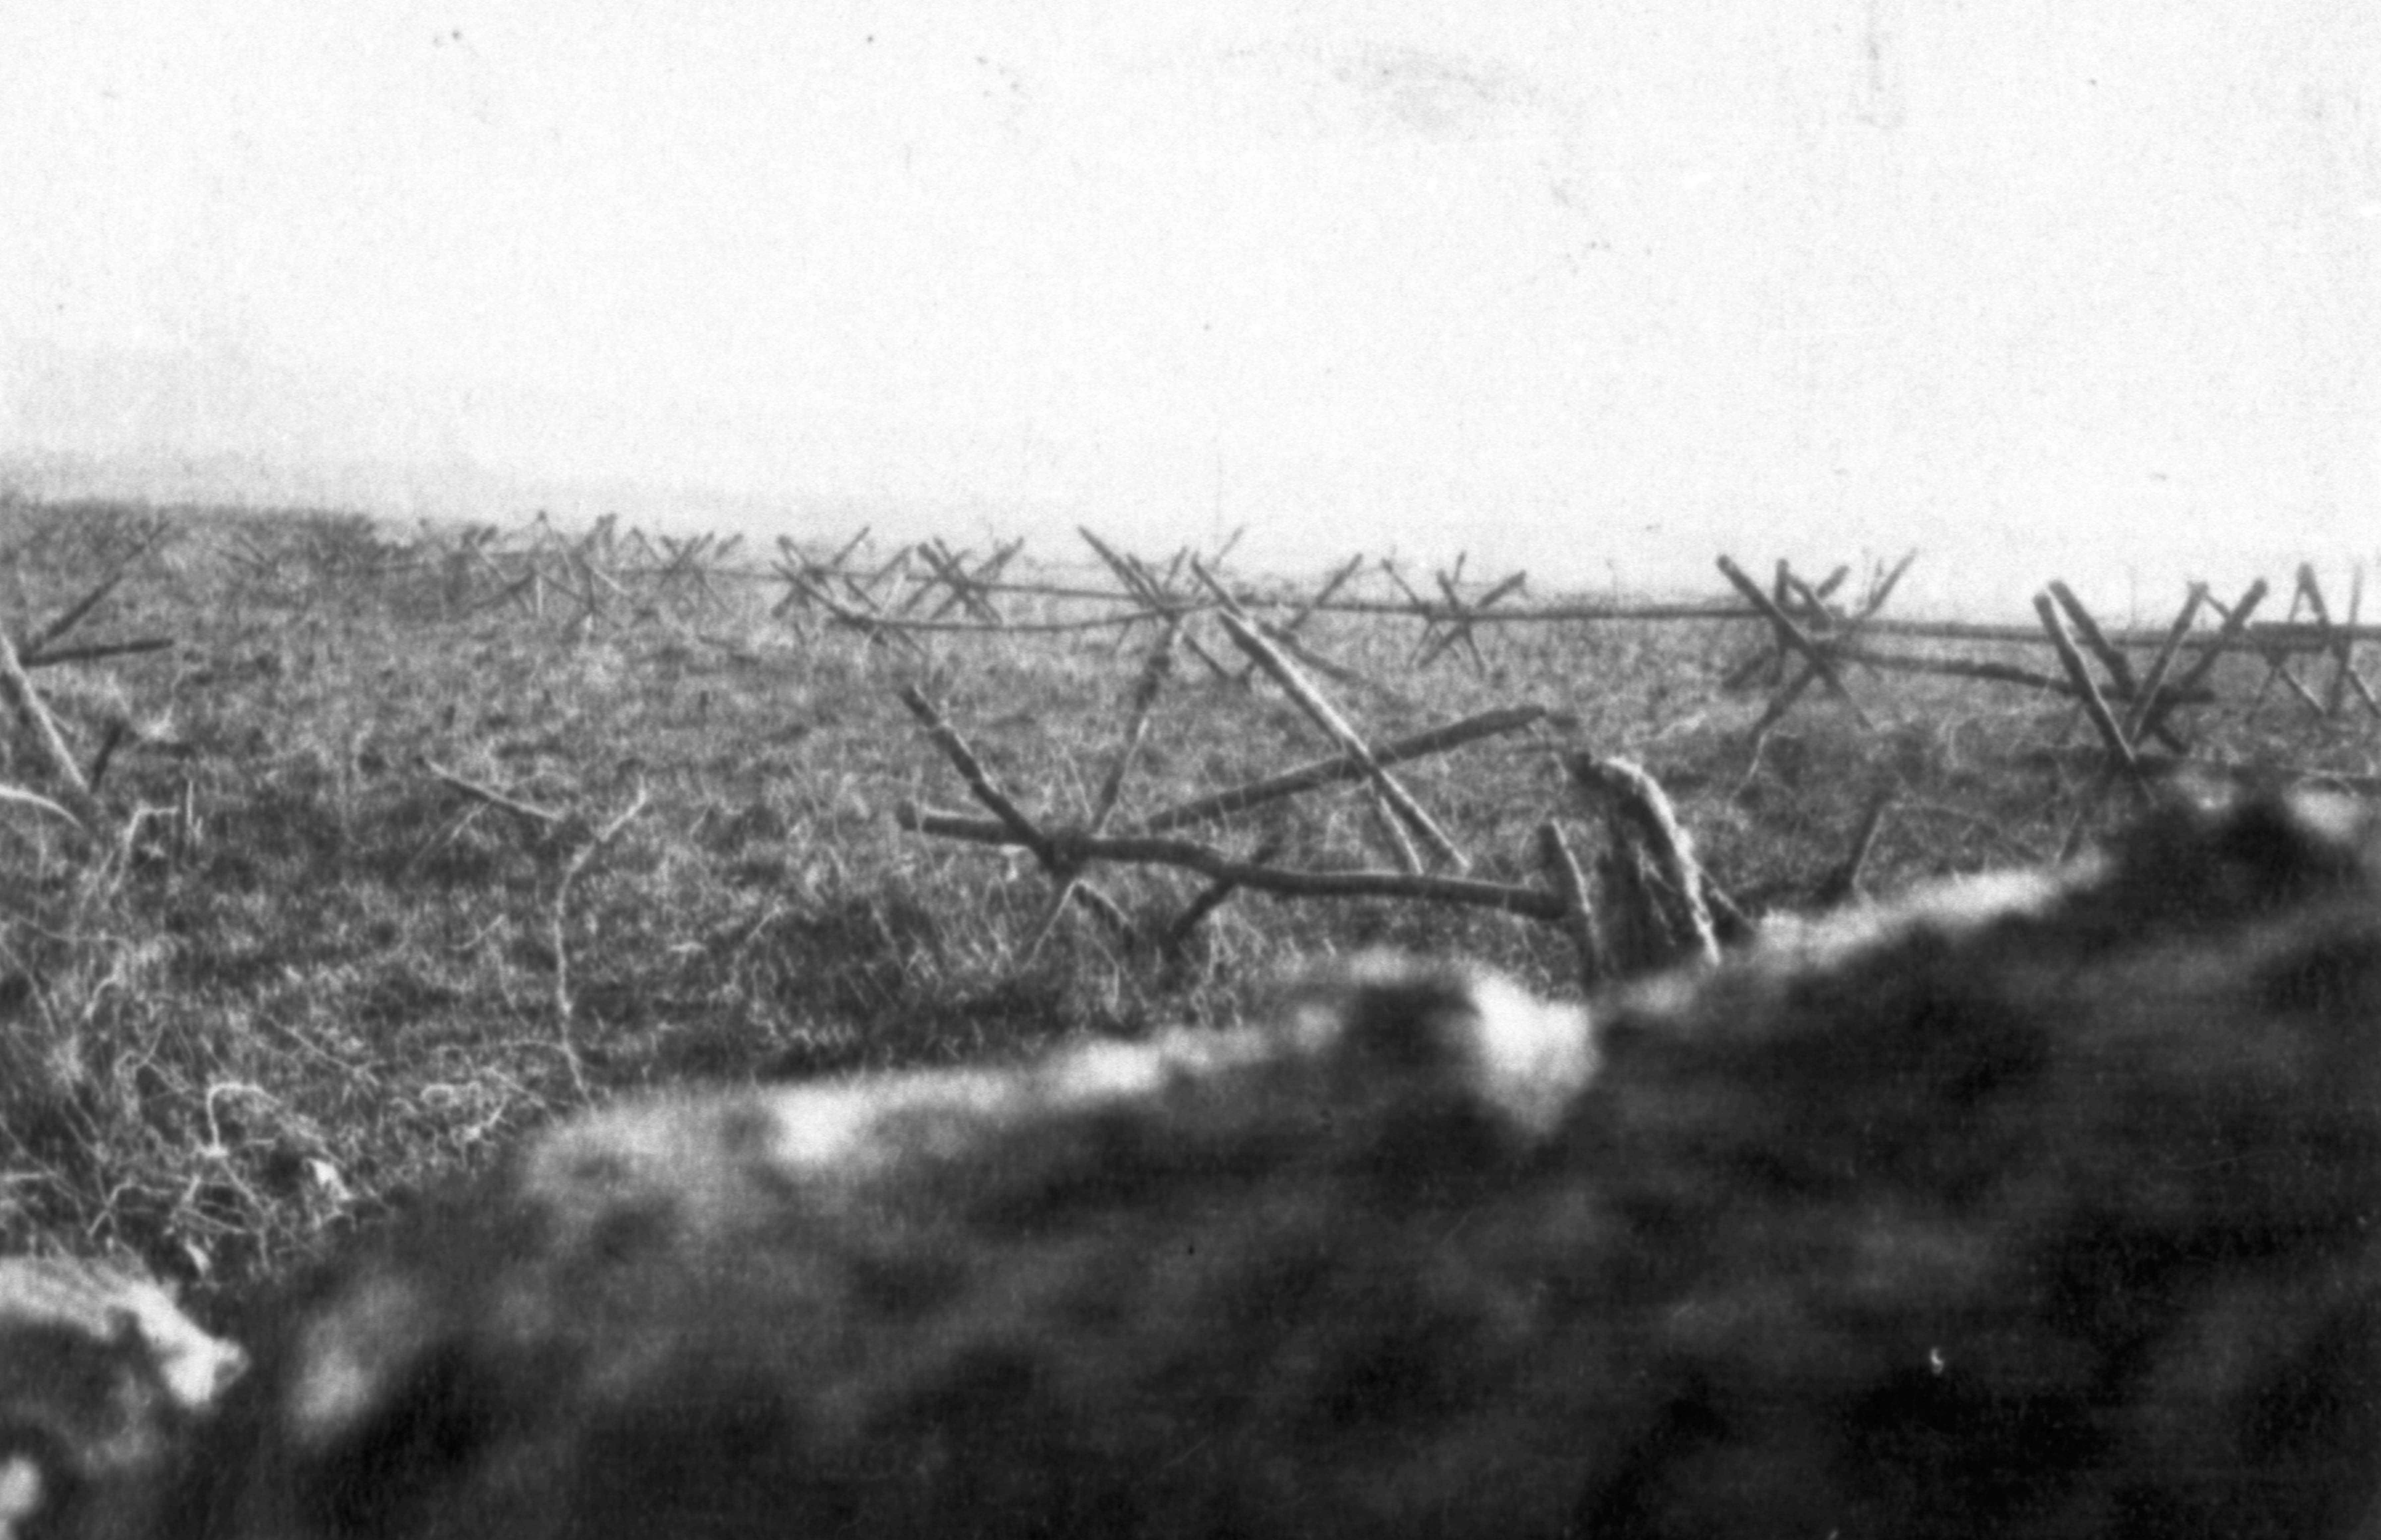 No Man's land was an area between two trenches of opposing sides during  World War One